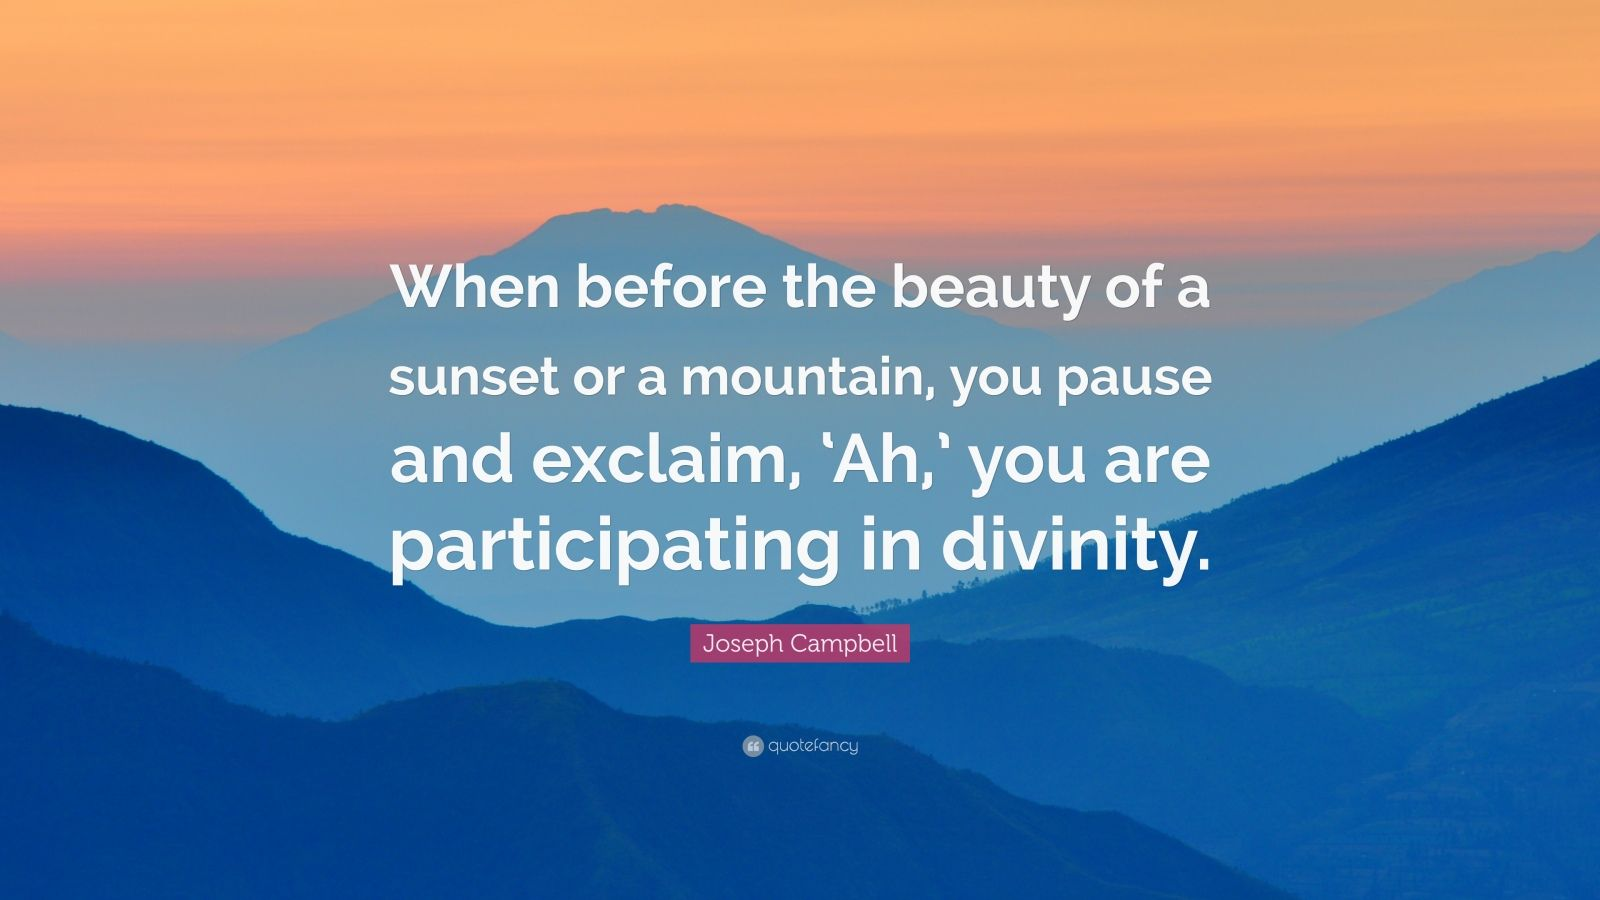 """Joseph Campbell Quote: """"When before the beauty of a sunset or a mountain, you pause and exclaim, 'Ah,' you are participating in divinity."""""""